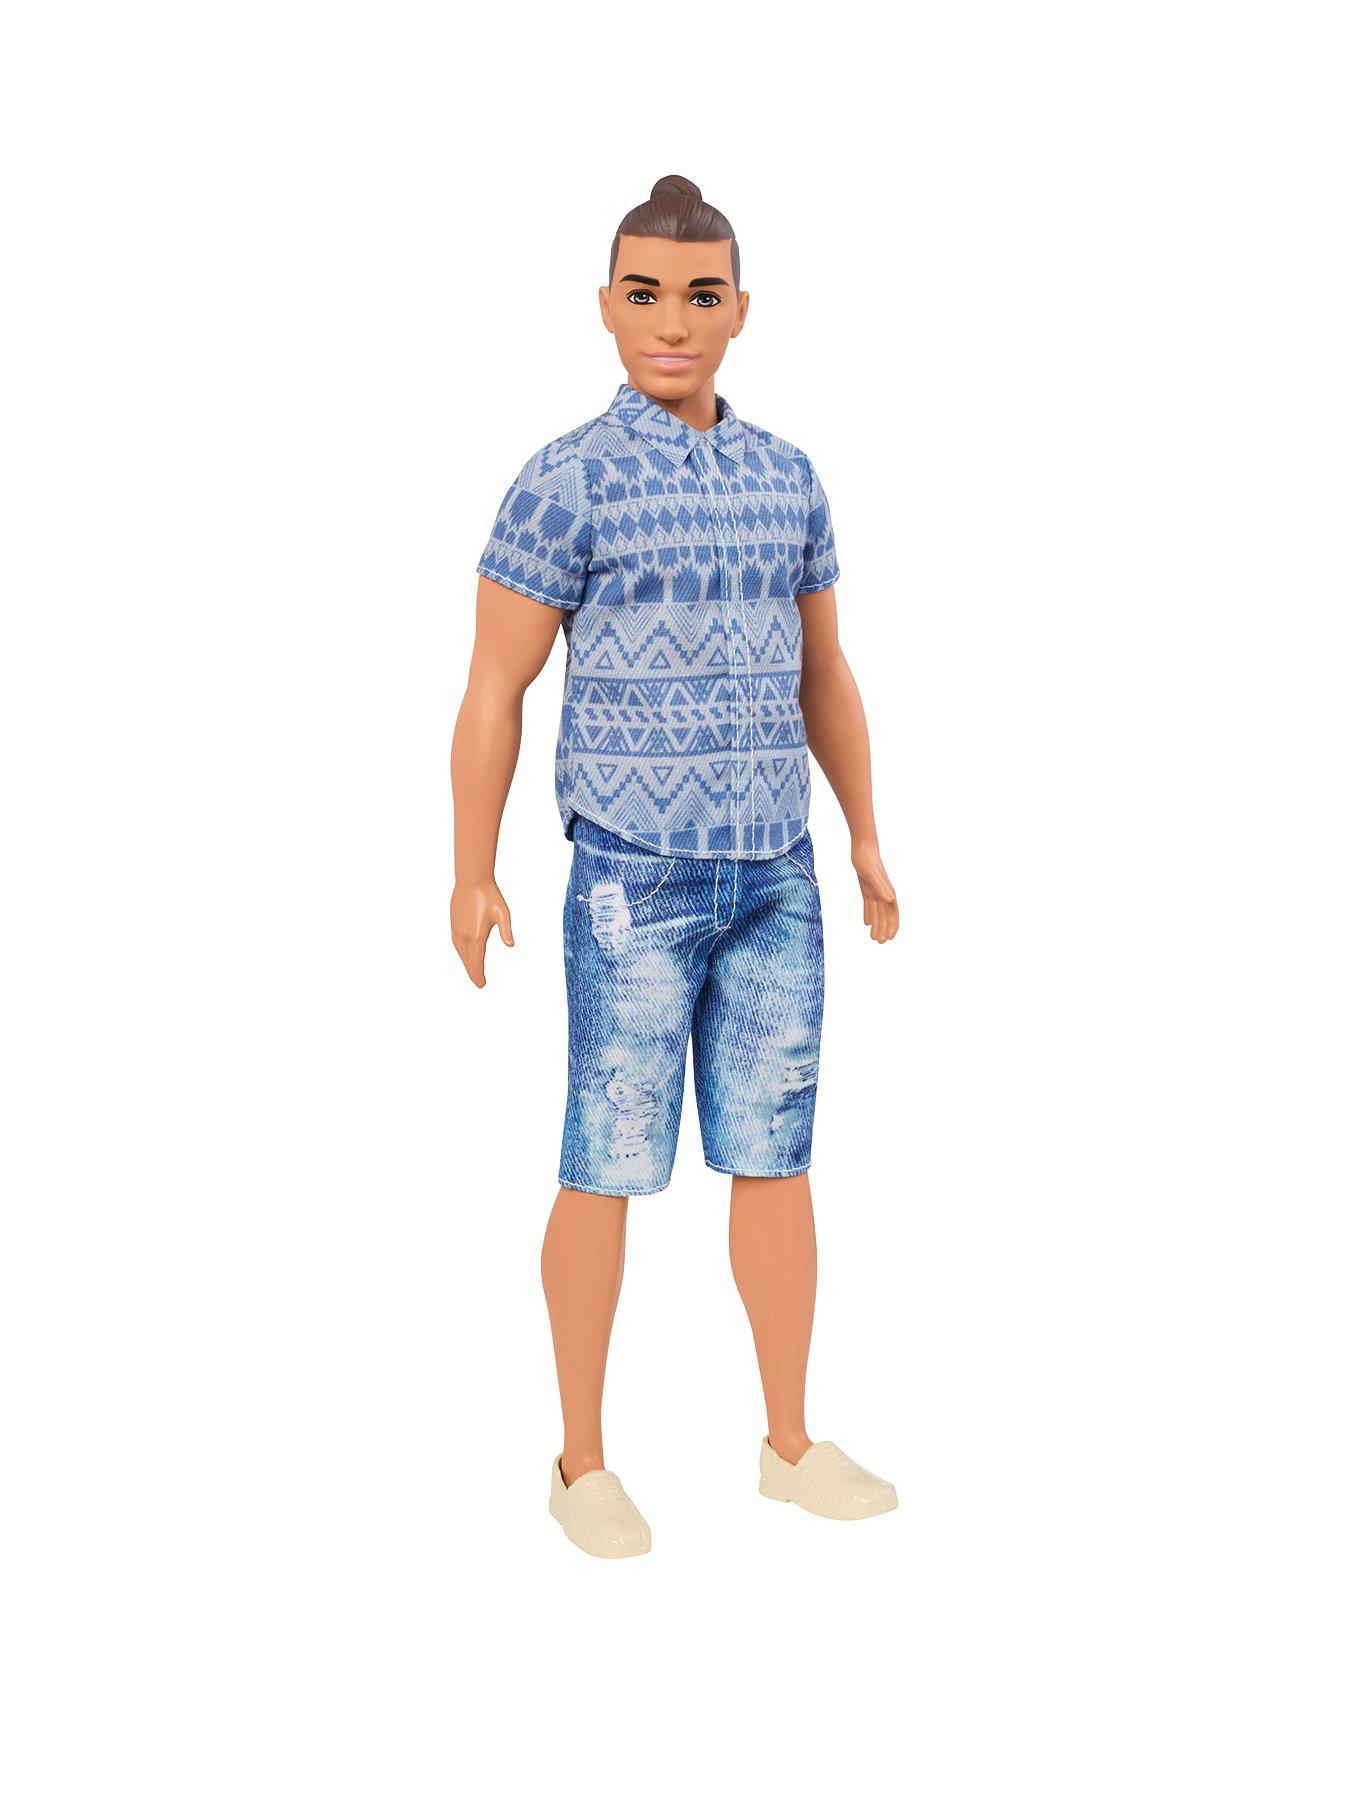 Compare prices for Barbie Ken Fashionistas Distressed Denim Doll